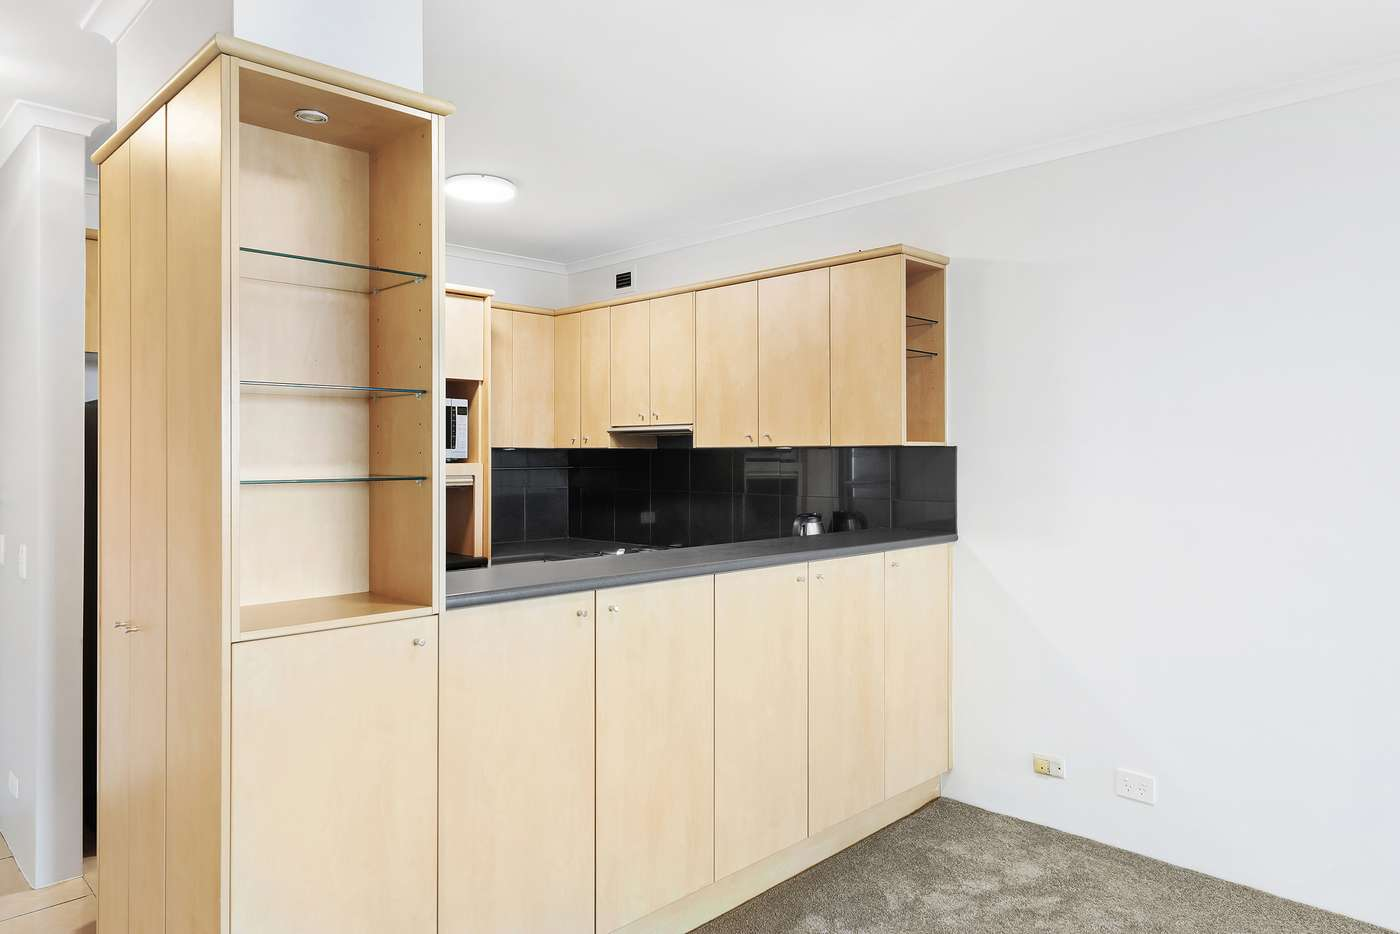 Sixth view of Homely apartment listing, 132/6-14 Oxford Street, Darlinghurst NSW 2010